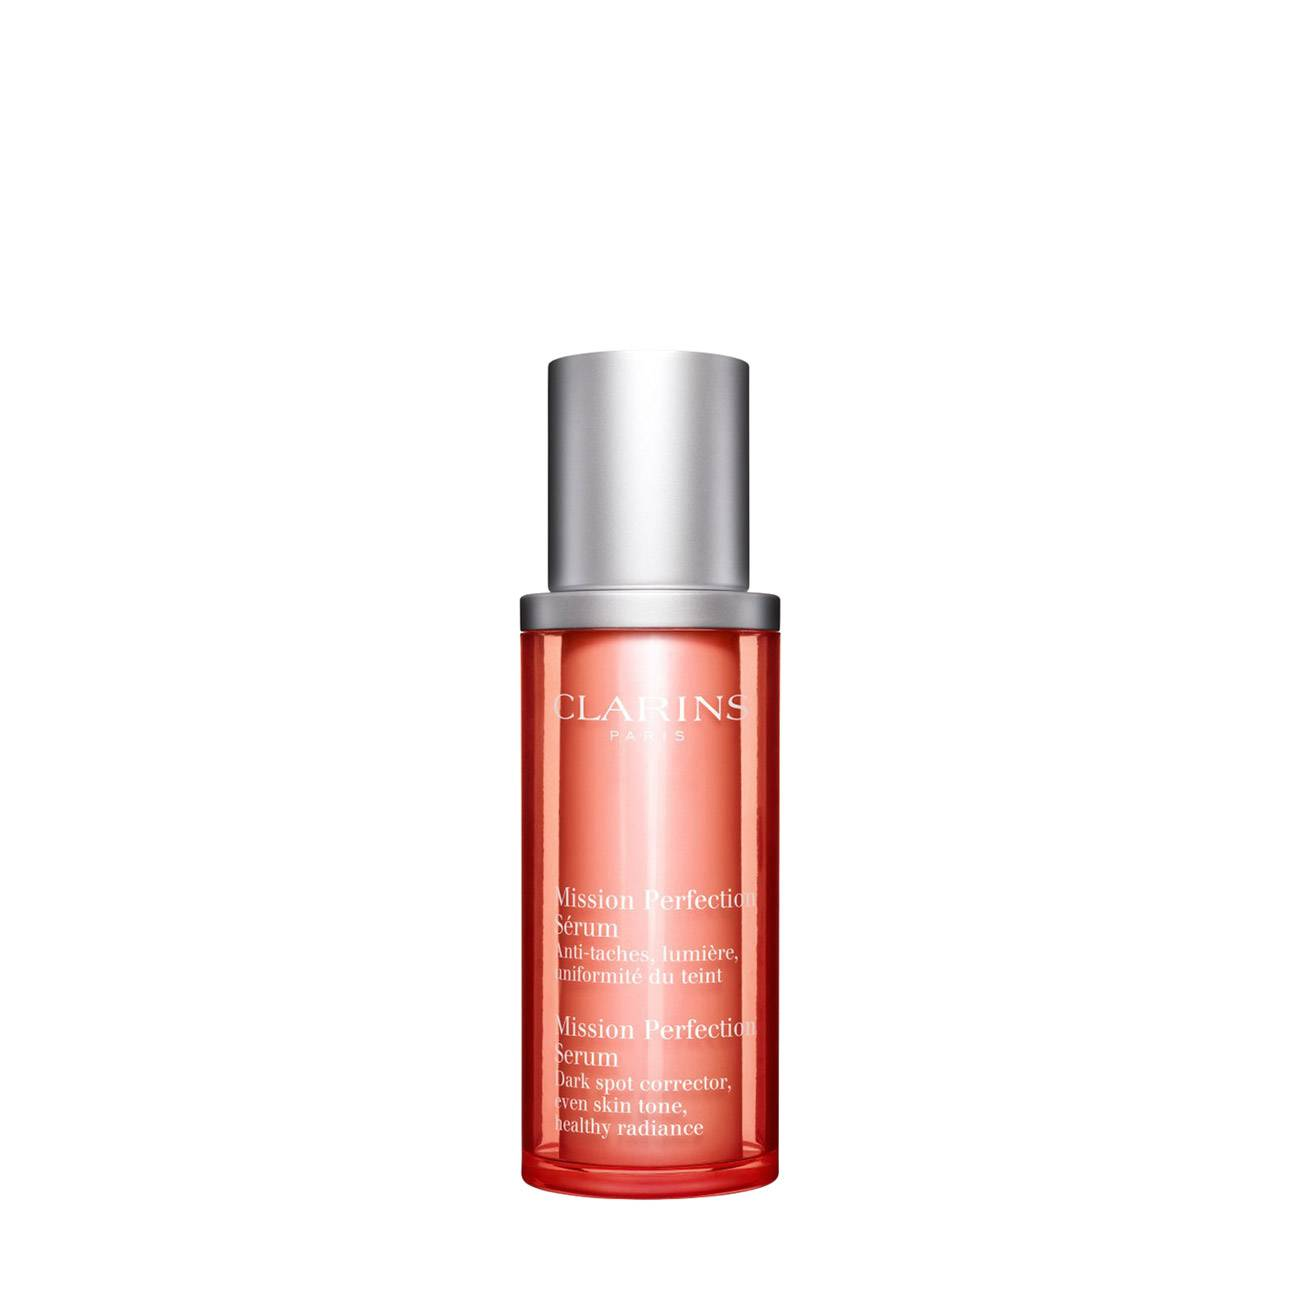 TONE CORRECTORS MISSION PERFECTION 30ml